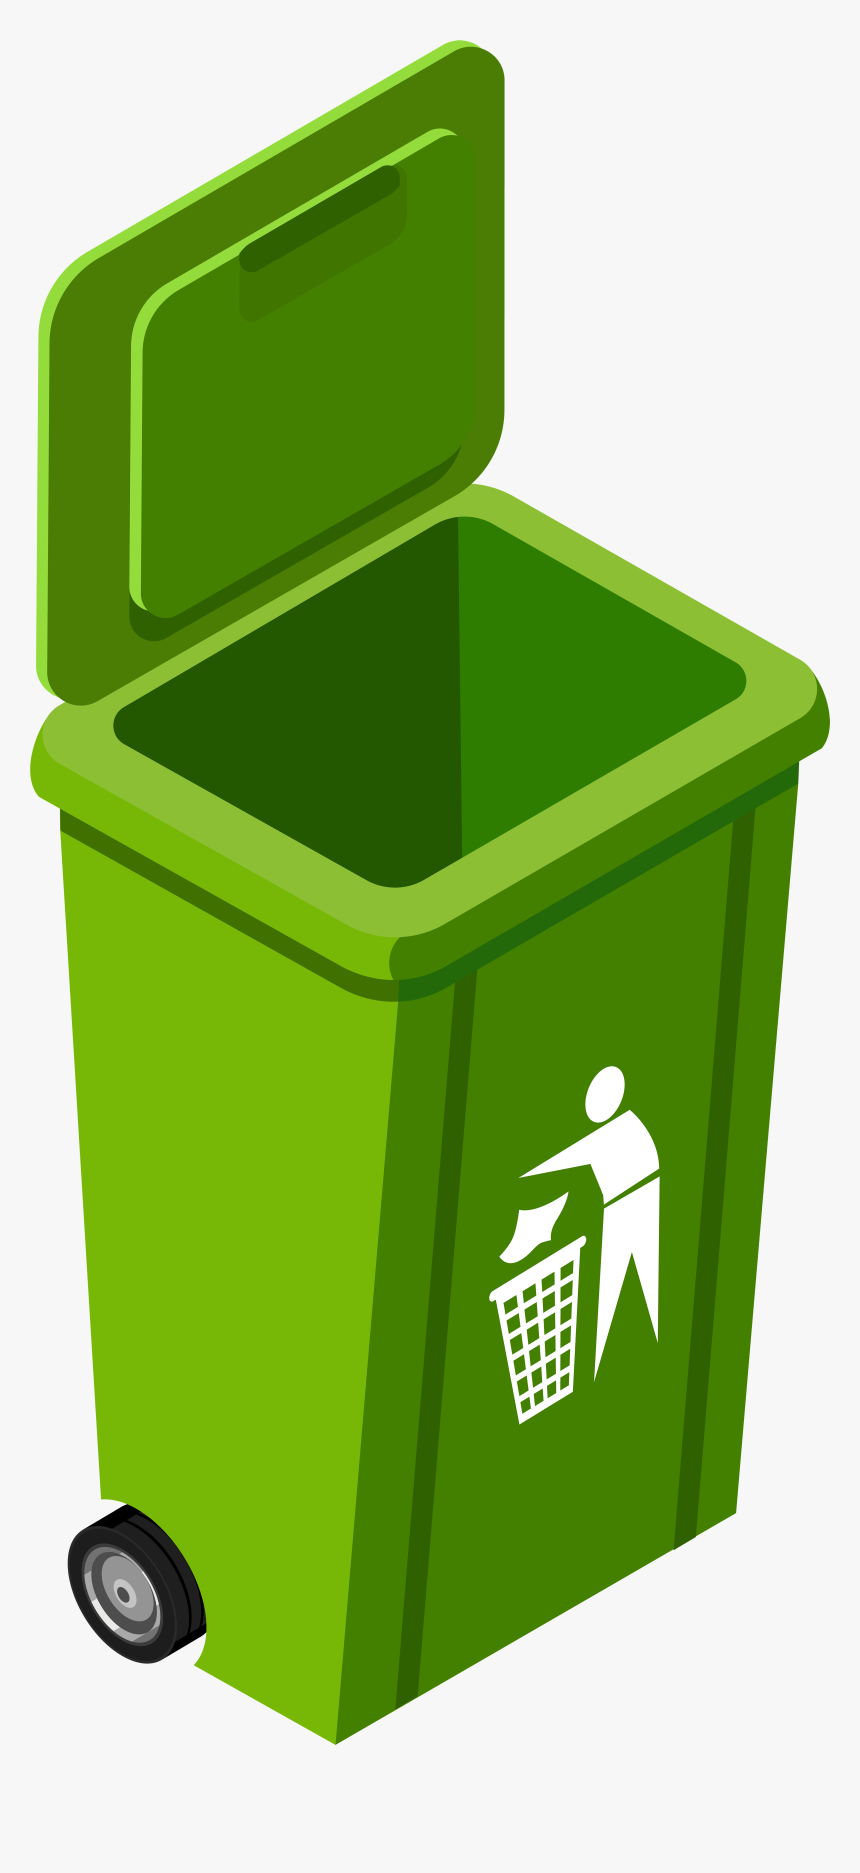 Green Trash Can Png Clip Art Image Green Trash Can Clipart